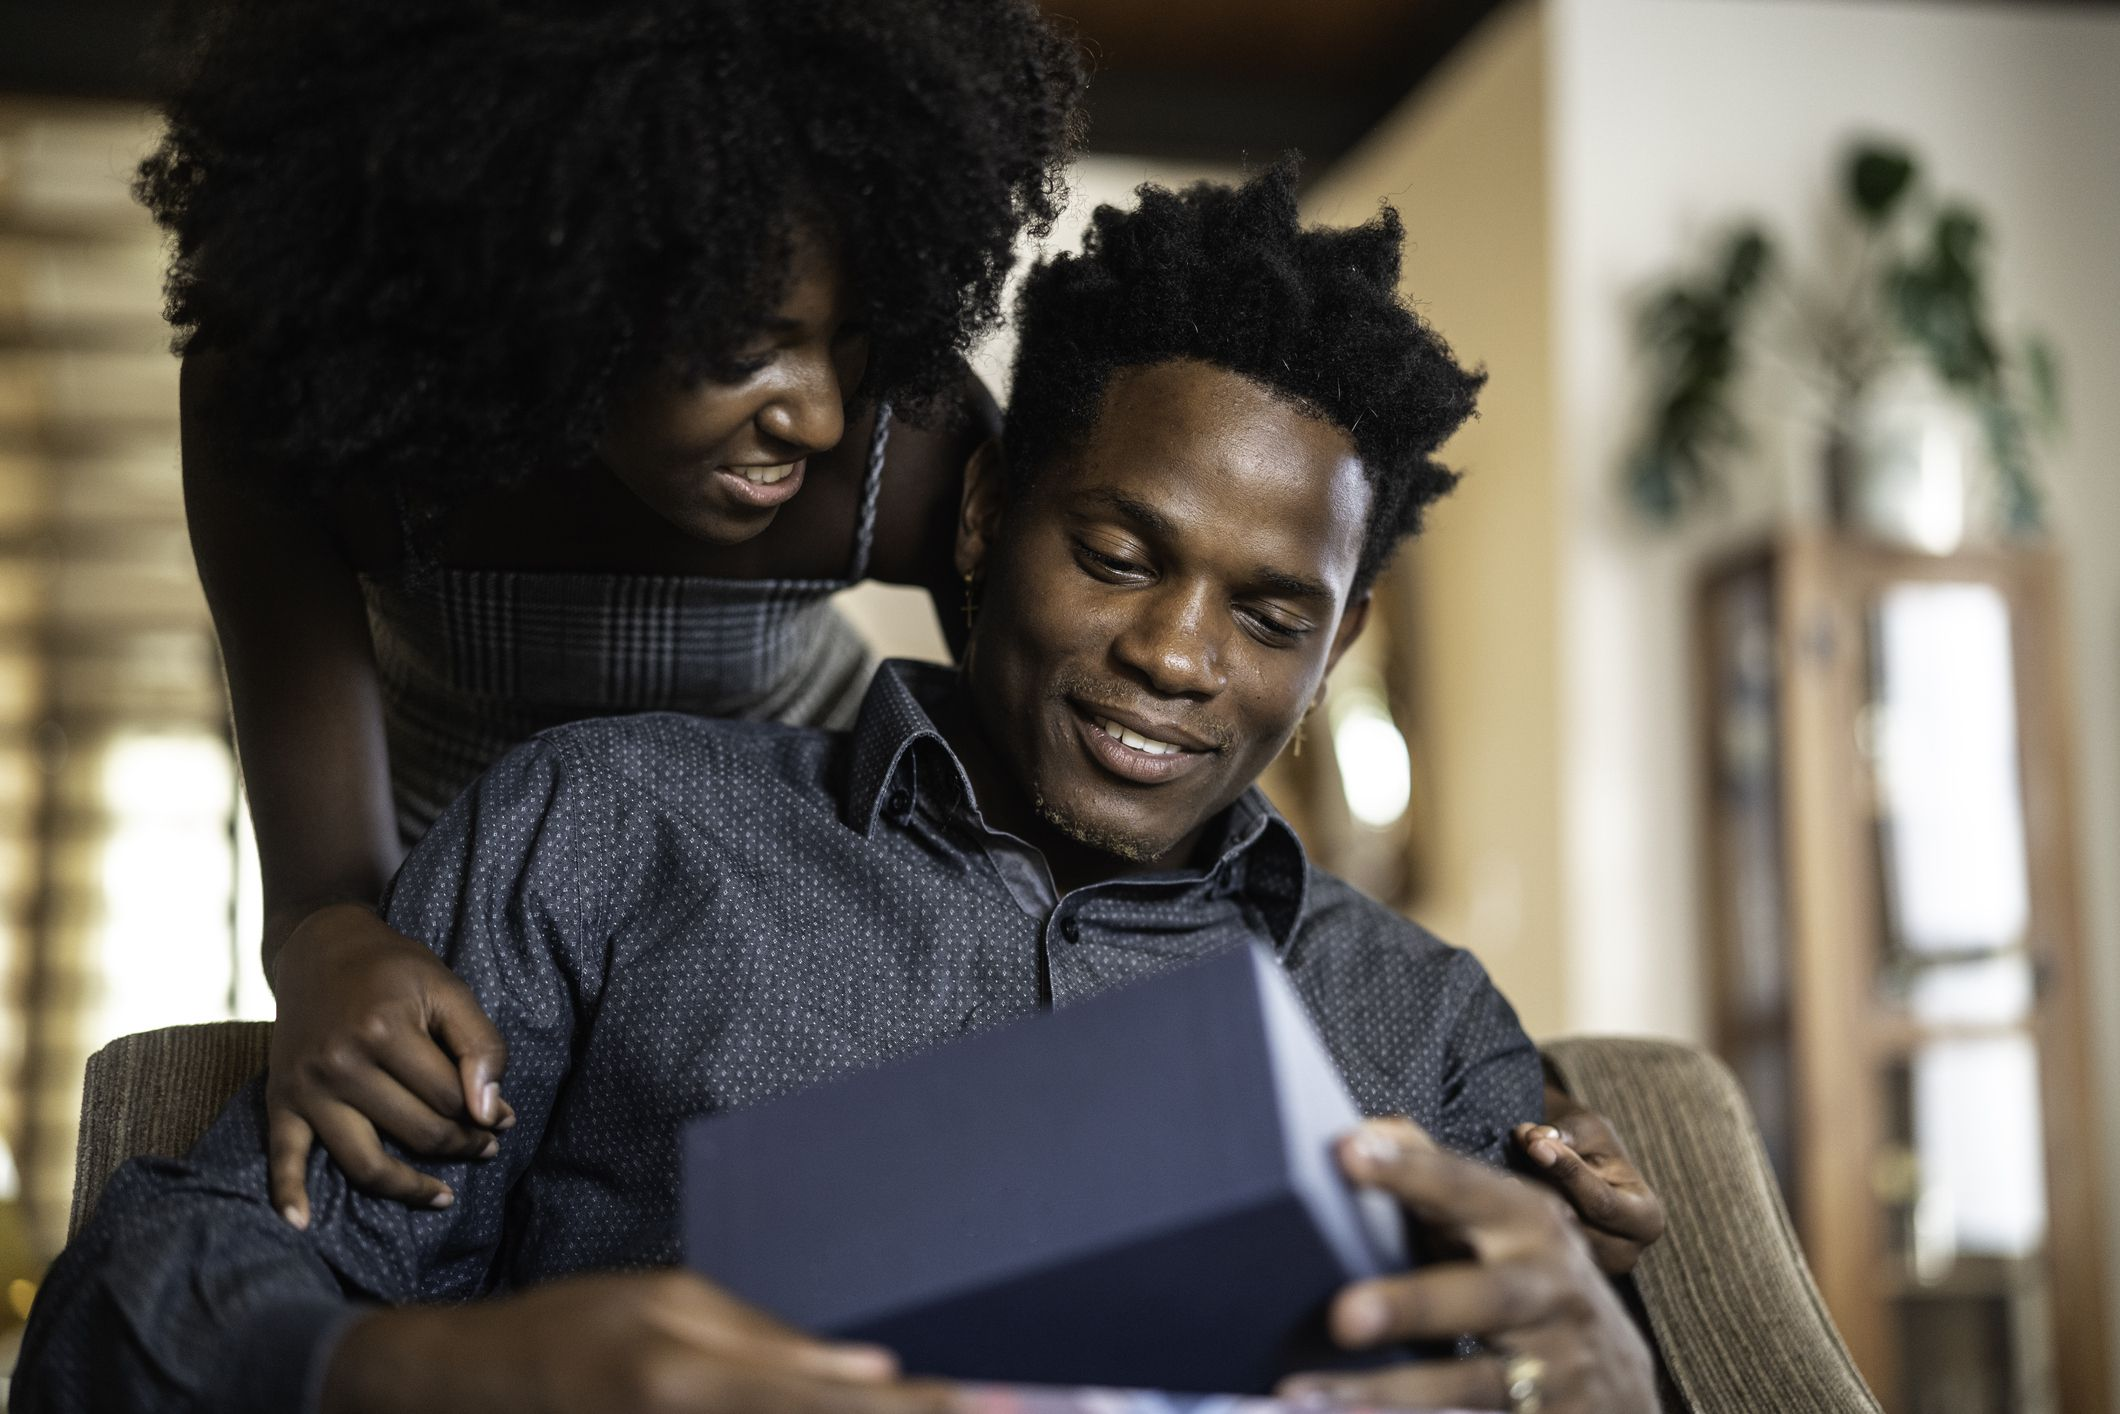 What the Receiving Gifts Love Language Means for a Relationship